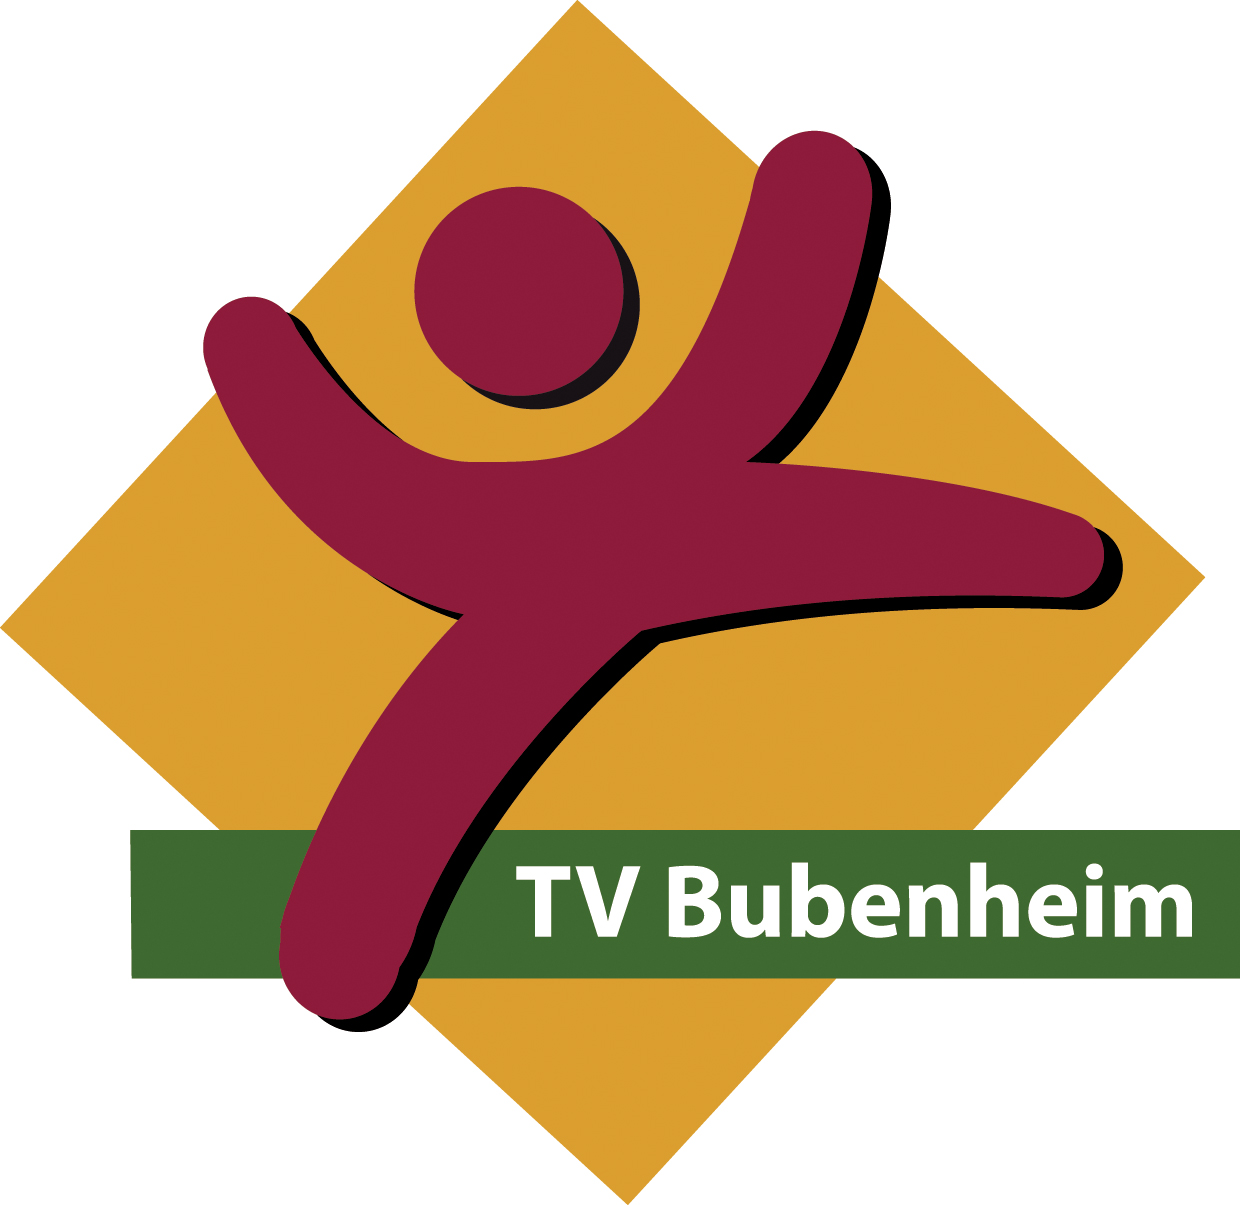 Turnverein (TV) 1898 Bubenheim e.V.